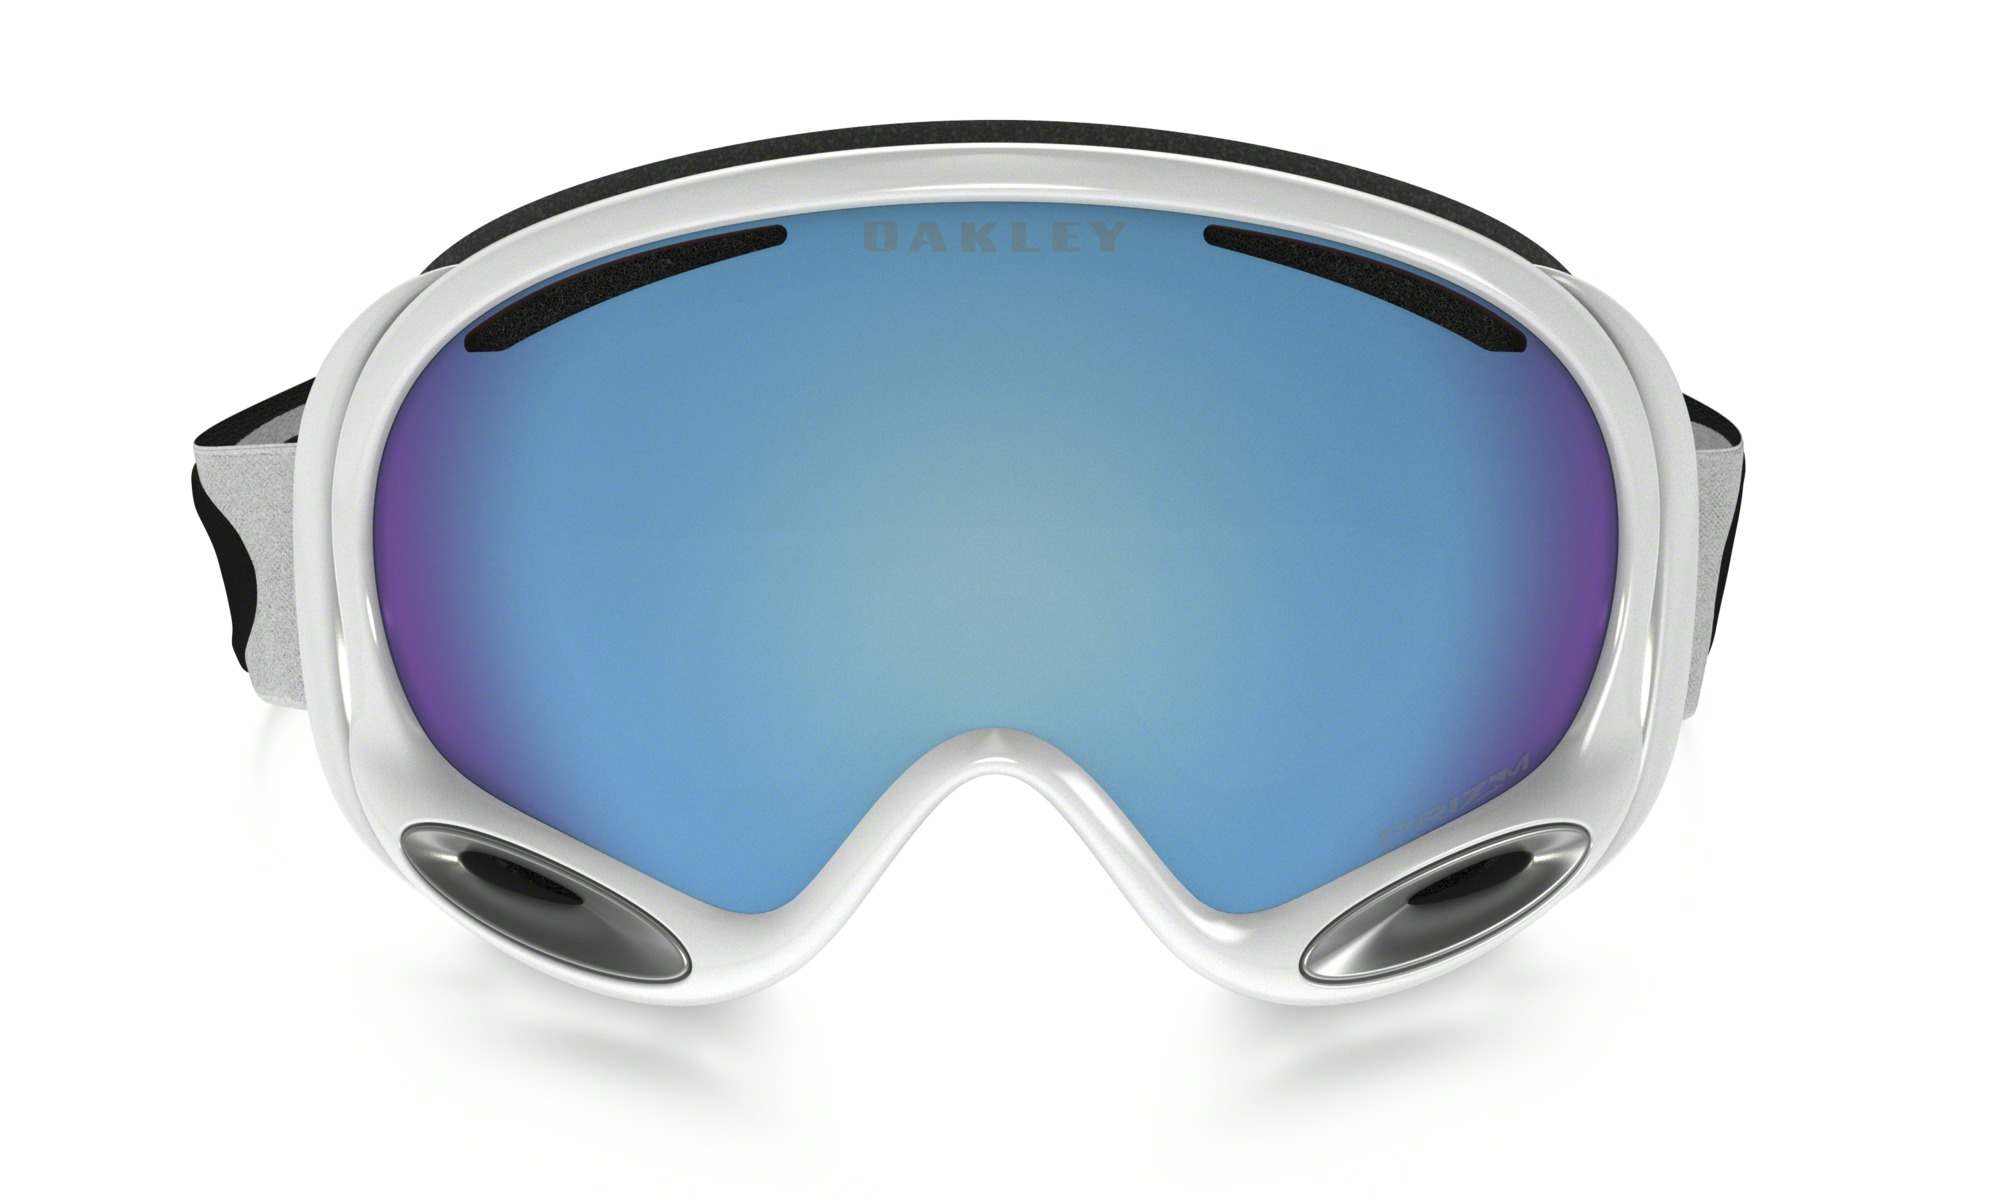 cheap authentic oakley sunglasses xo5o  Details